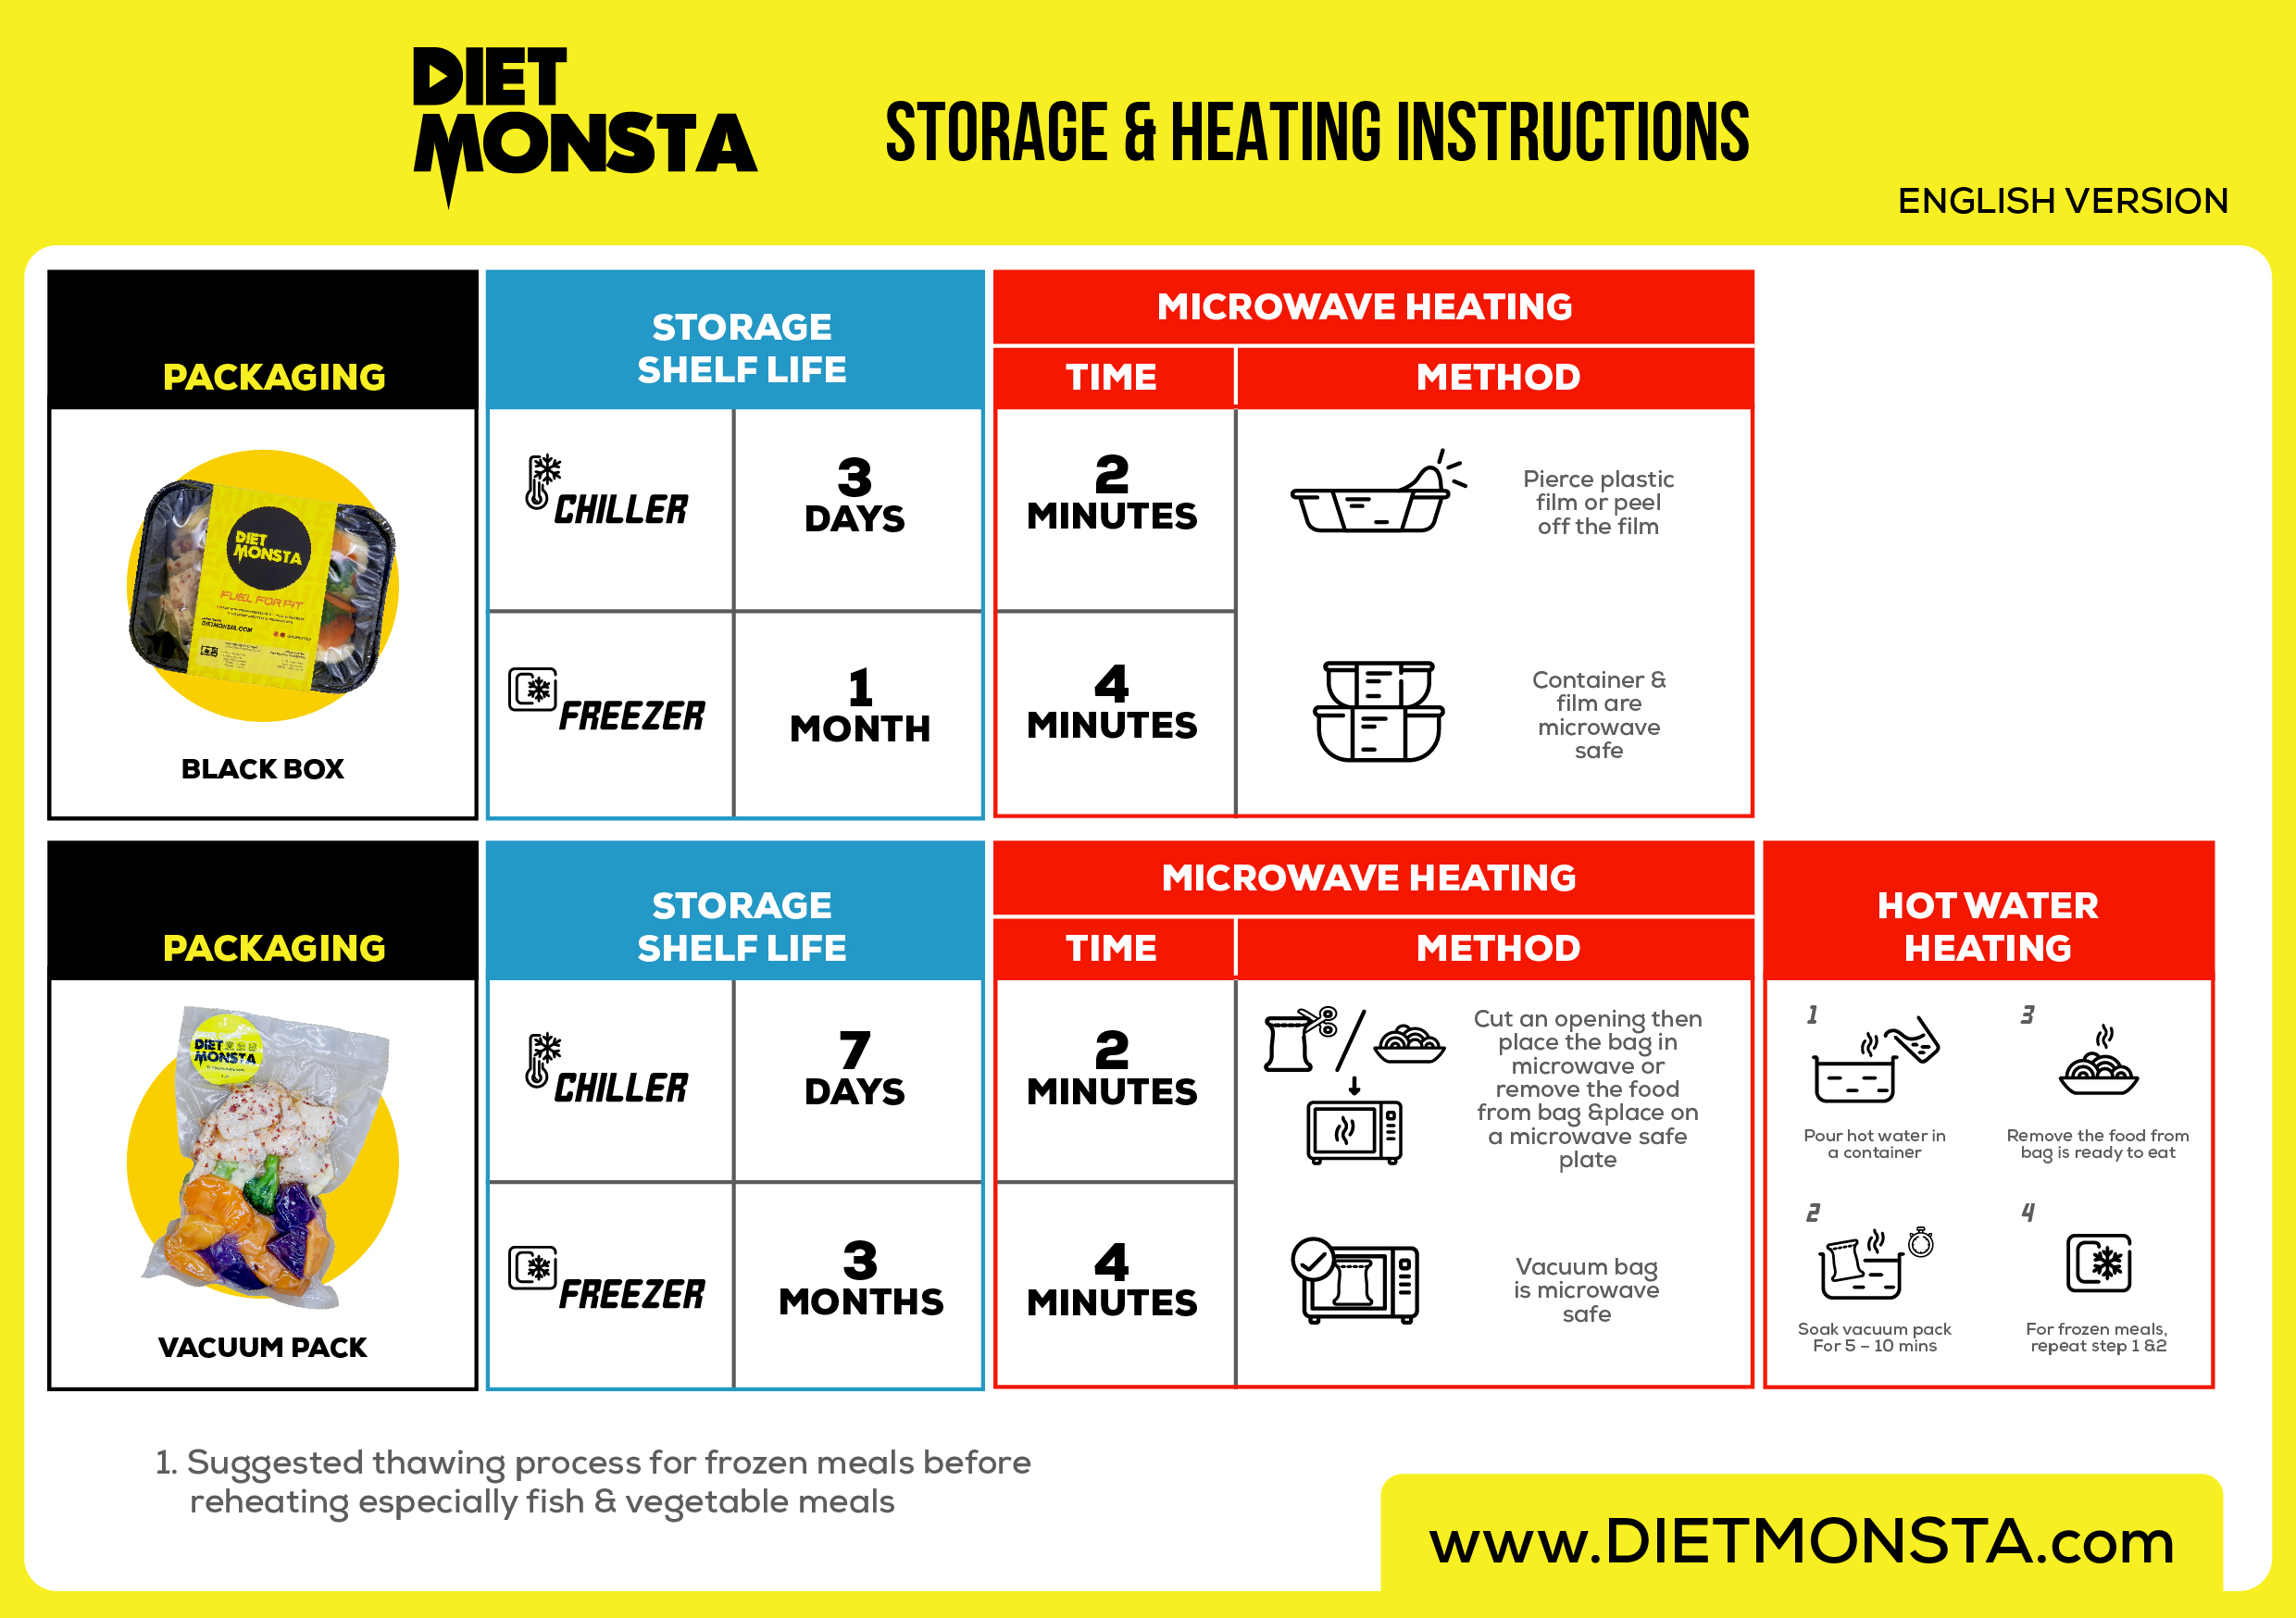 STORAGE & HEATING INSTRUCTIONS